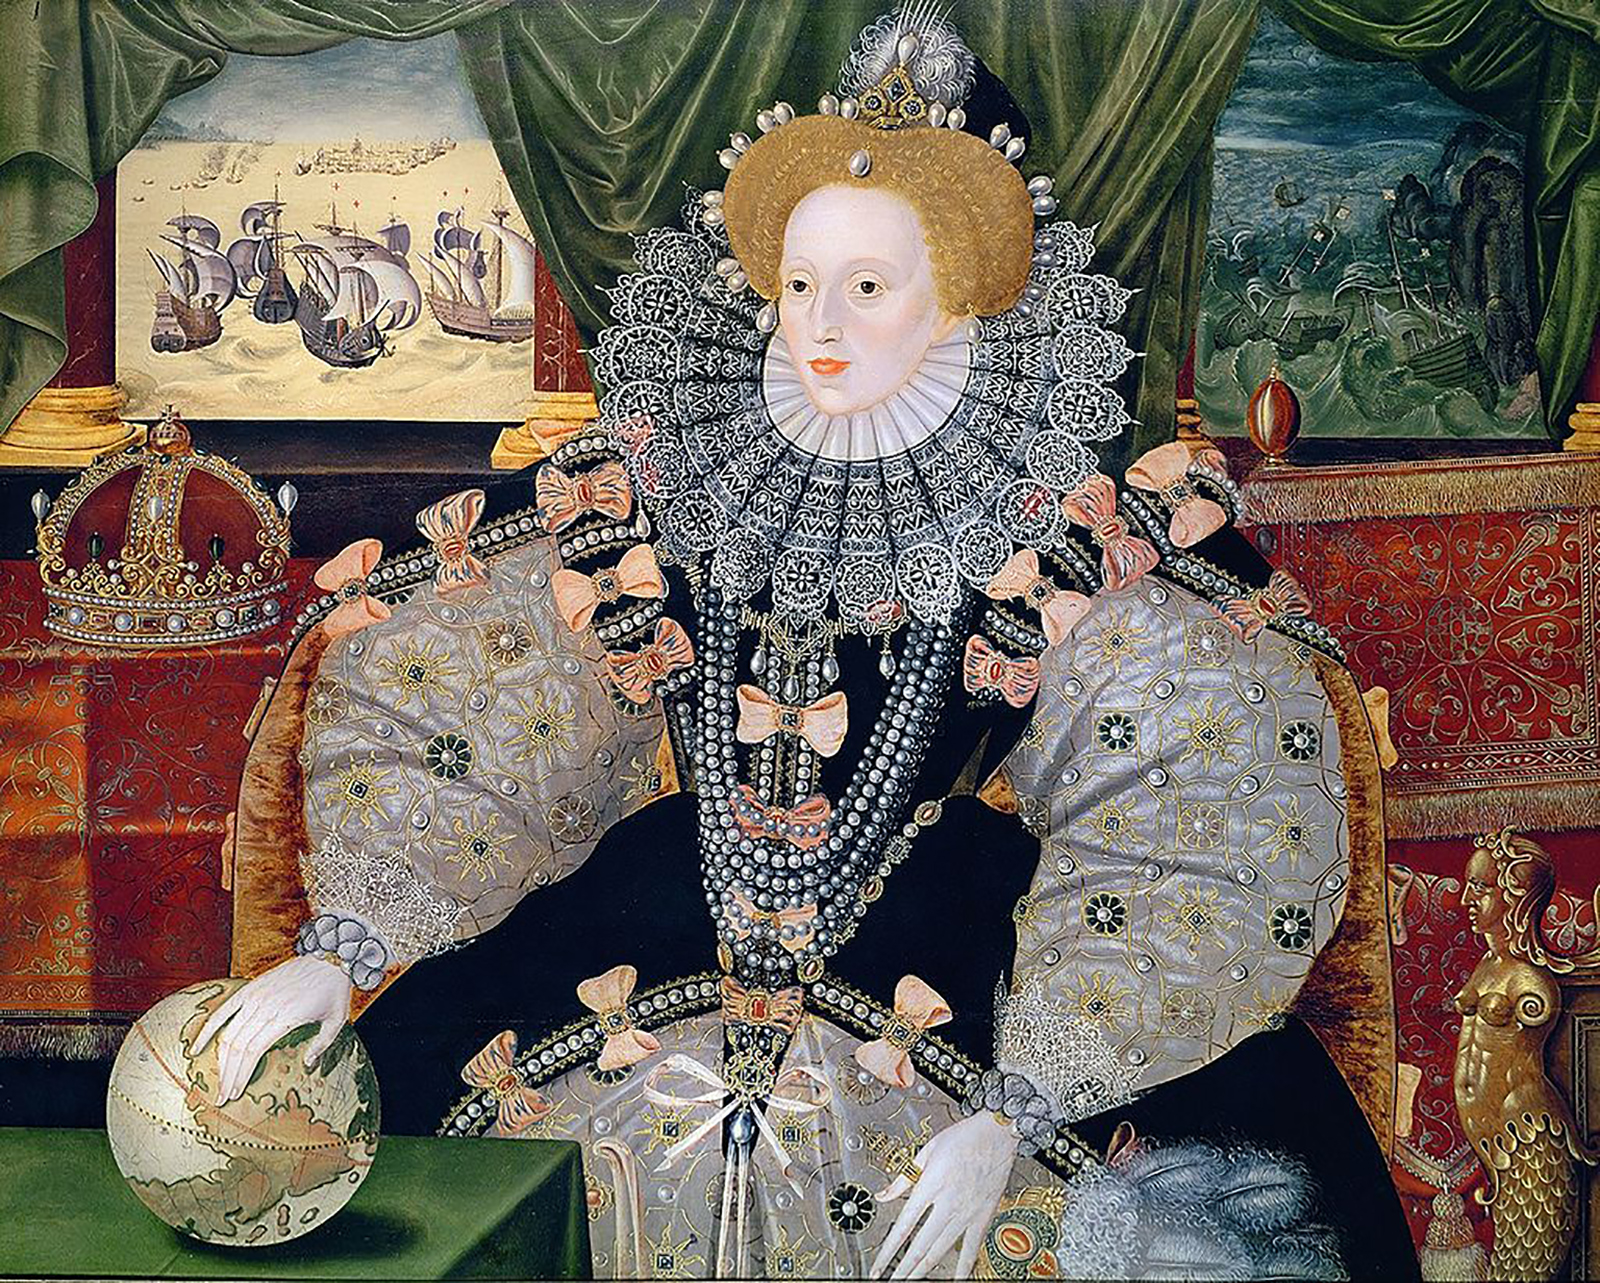 Portrait of Elizabeth I, with a depiction of the Battle of the Armada behind her, her hand resting on a globe.